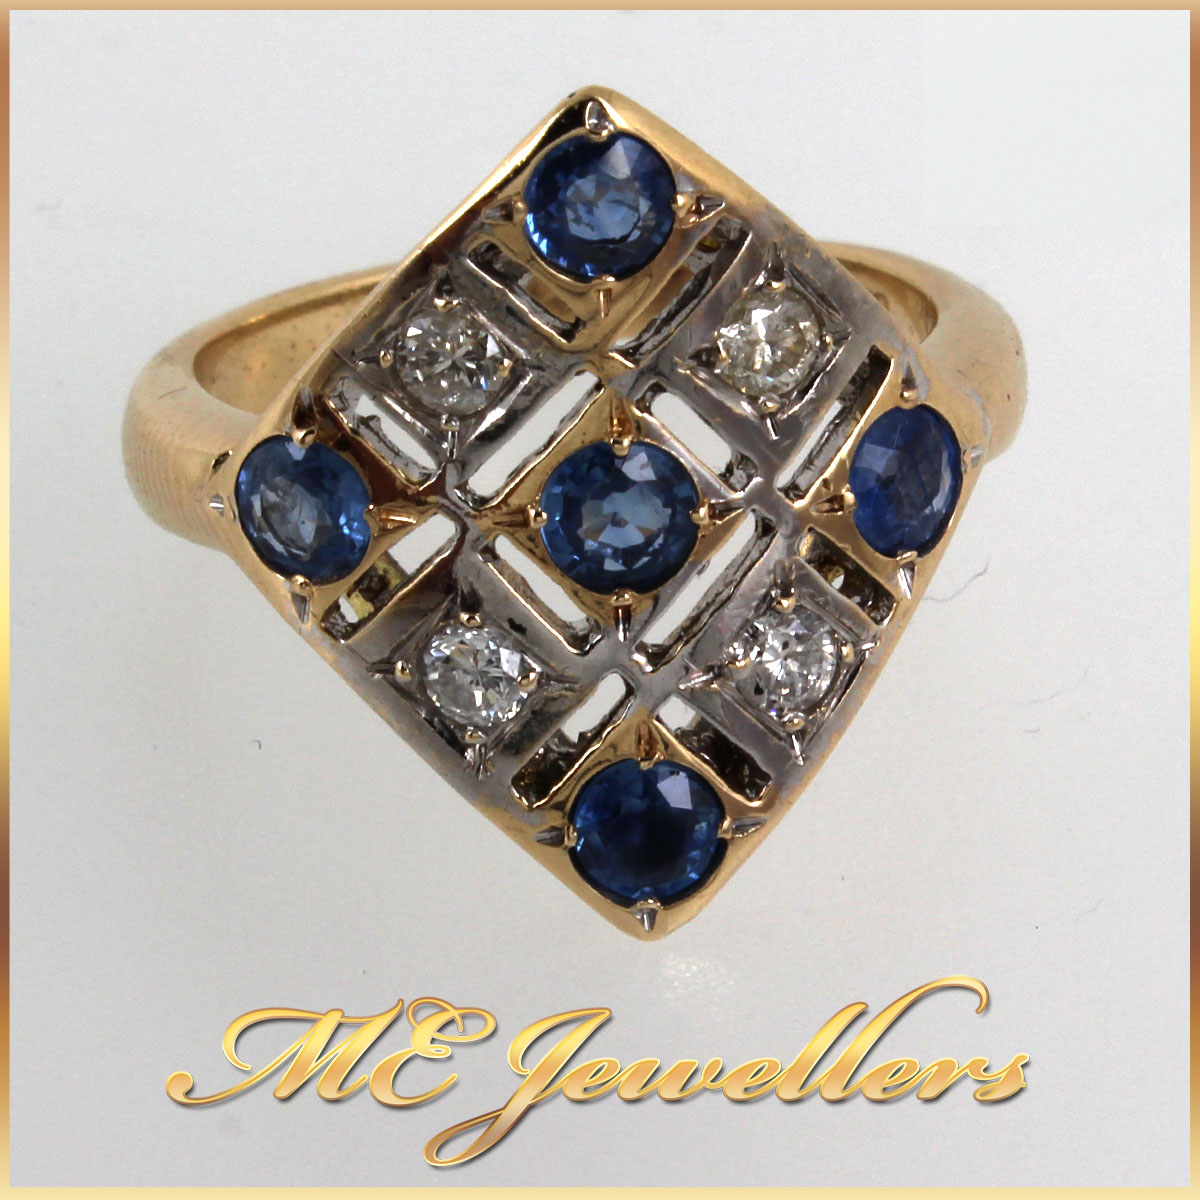 9K Yellow Gold Ring With Diamonds x Blue Sapphire